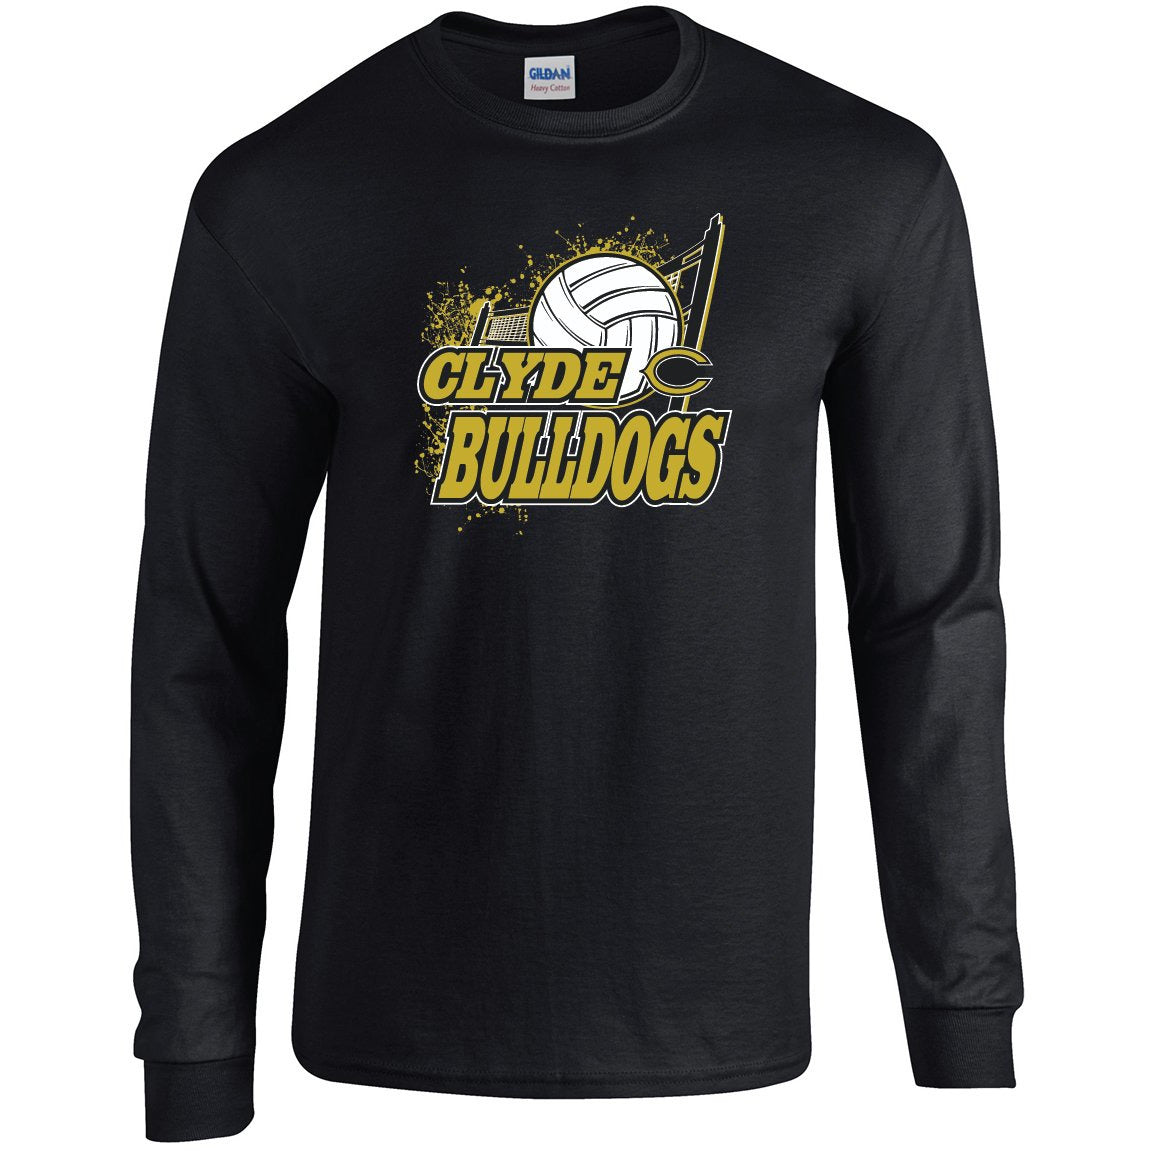 Clyde Bulldogs - Volleyball Long Sleeve T-Shirt